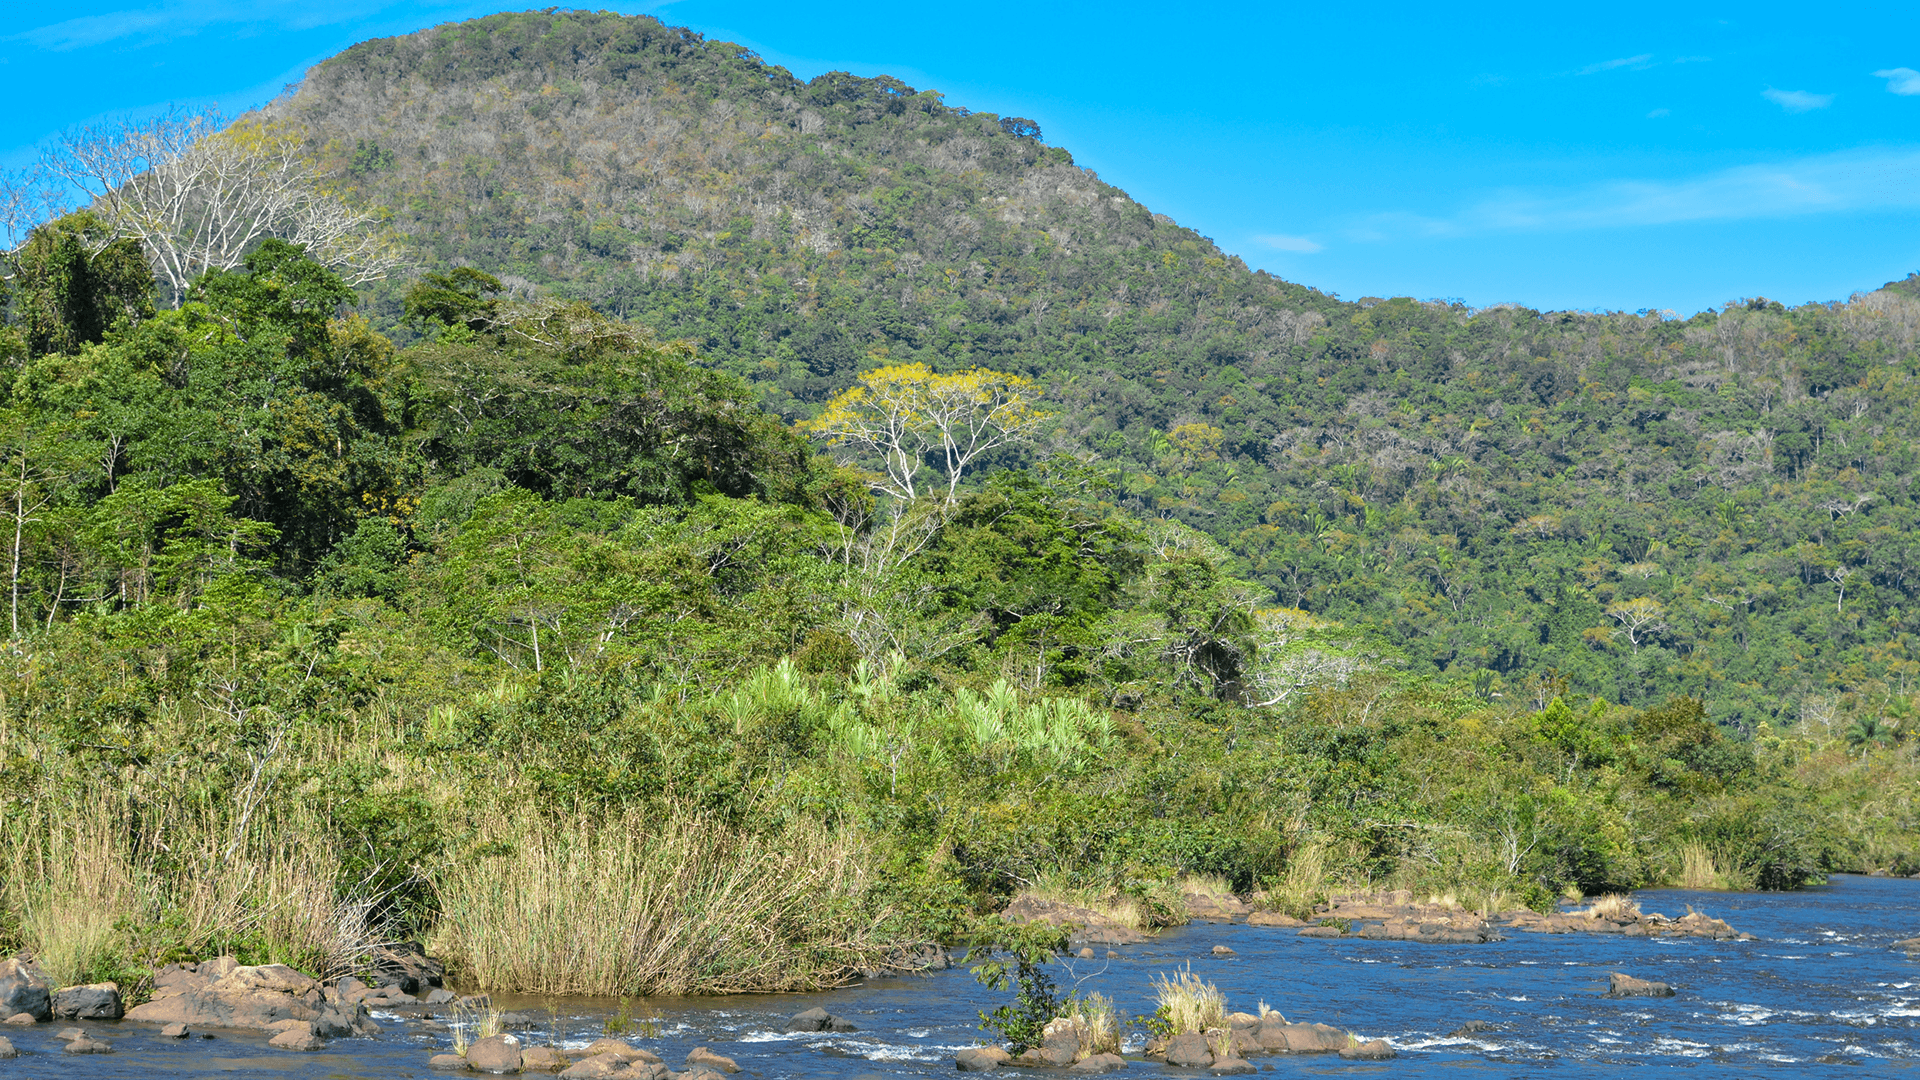 Landscapes on the border of remote and hard to reach Mountain Pine Ridge Forest Reserve and Chiquibul Nature Reserve in Belize